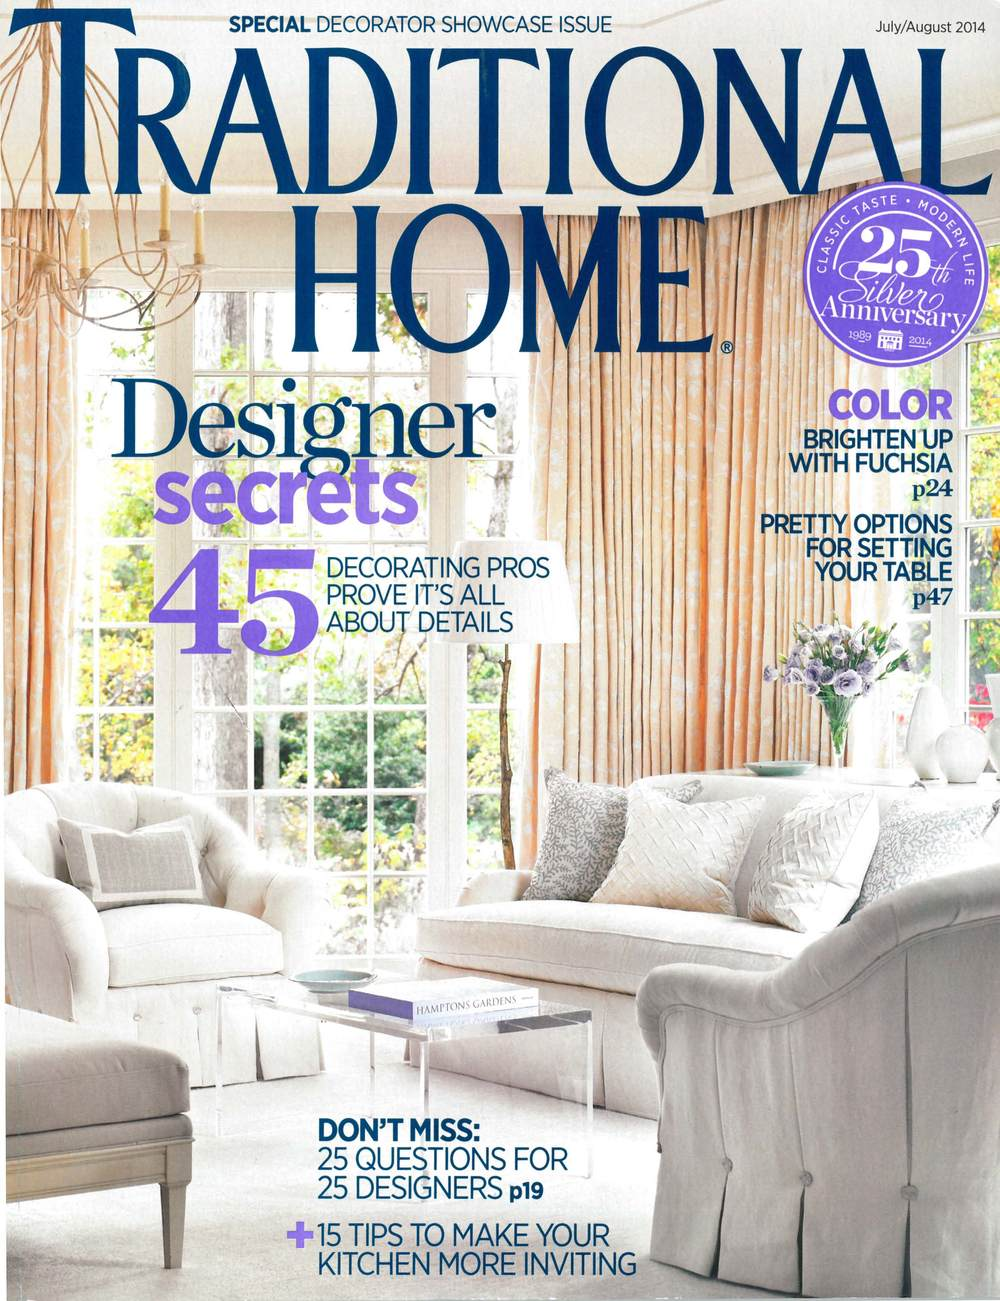 Traditional Home - July/August 2014